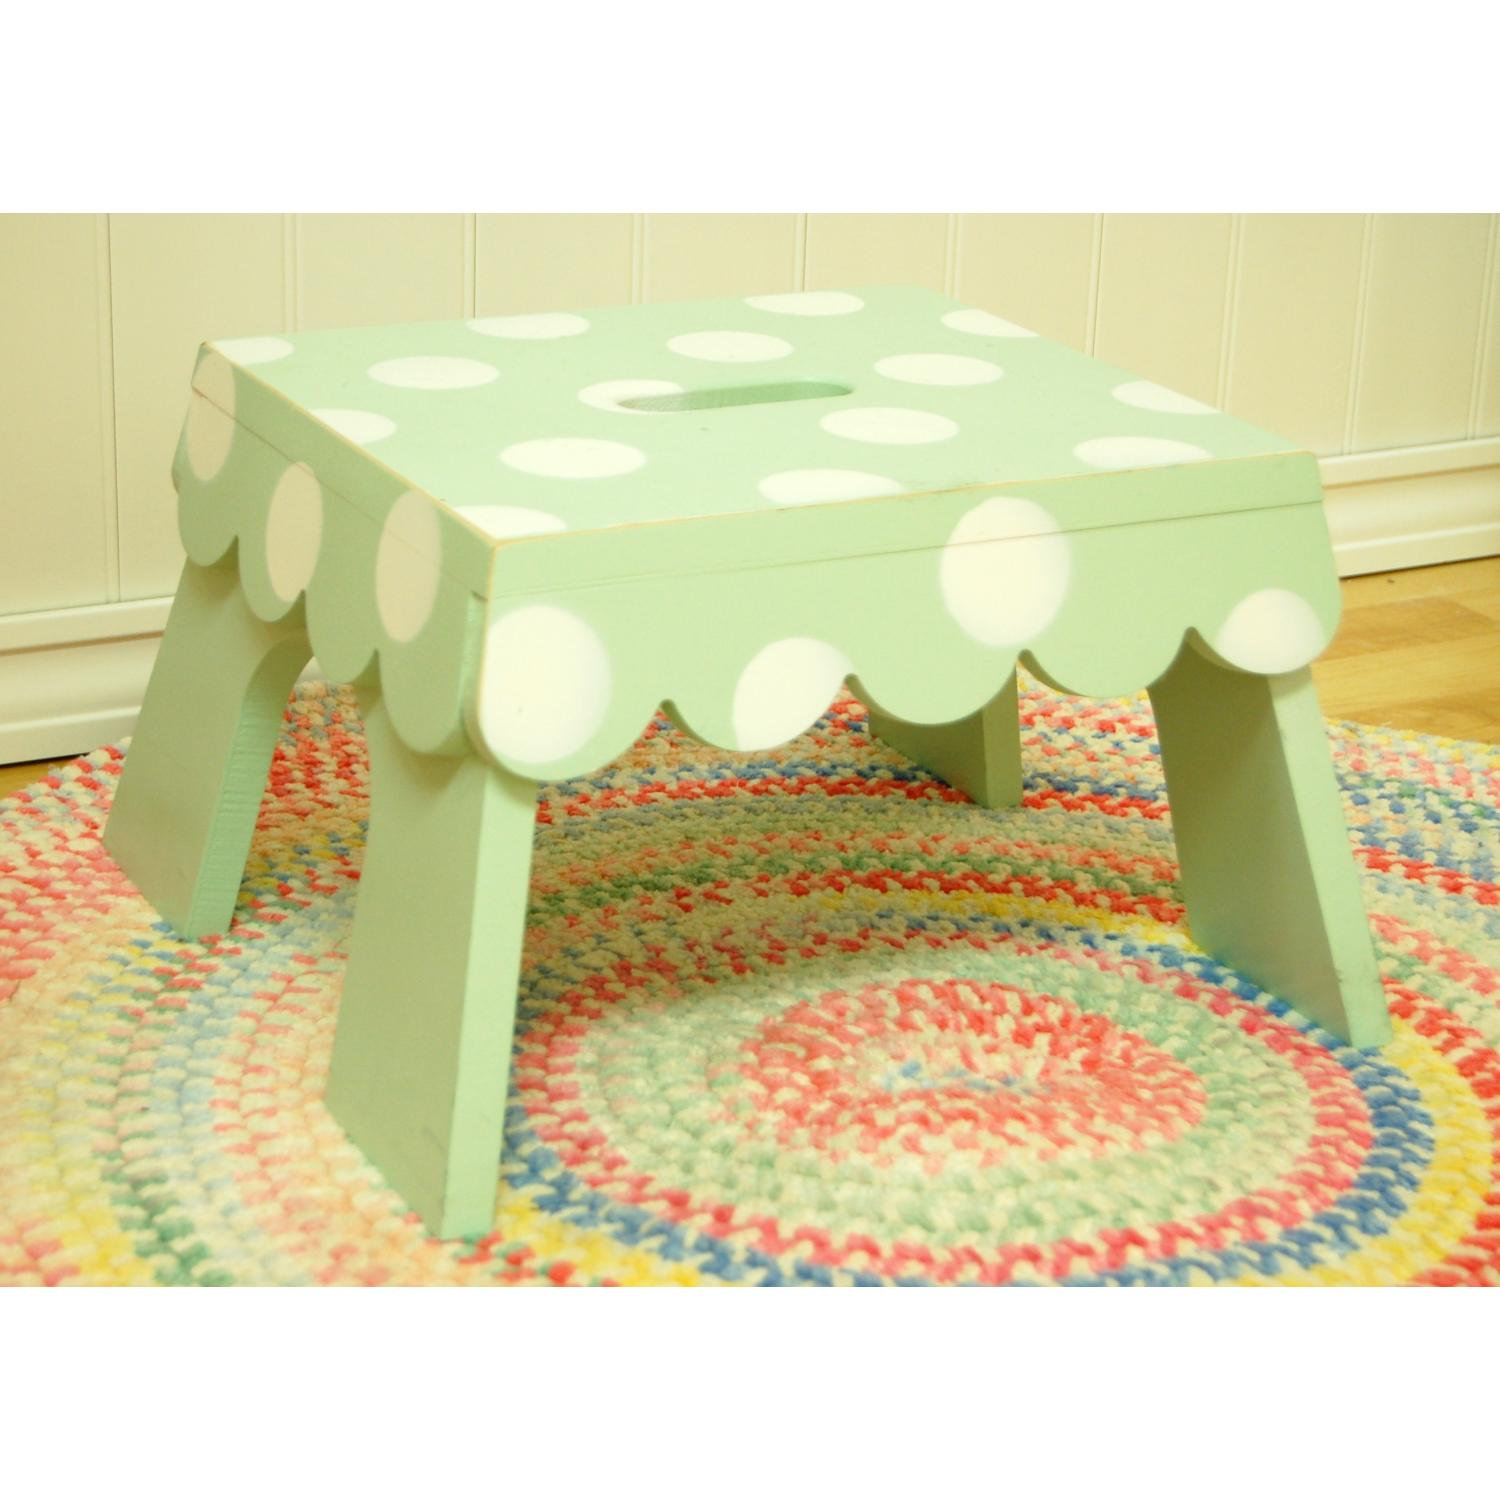 New Arrivals Scalloped Edge Step Stool - Green Polka Dot